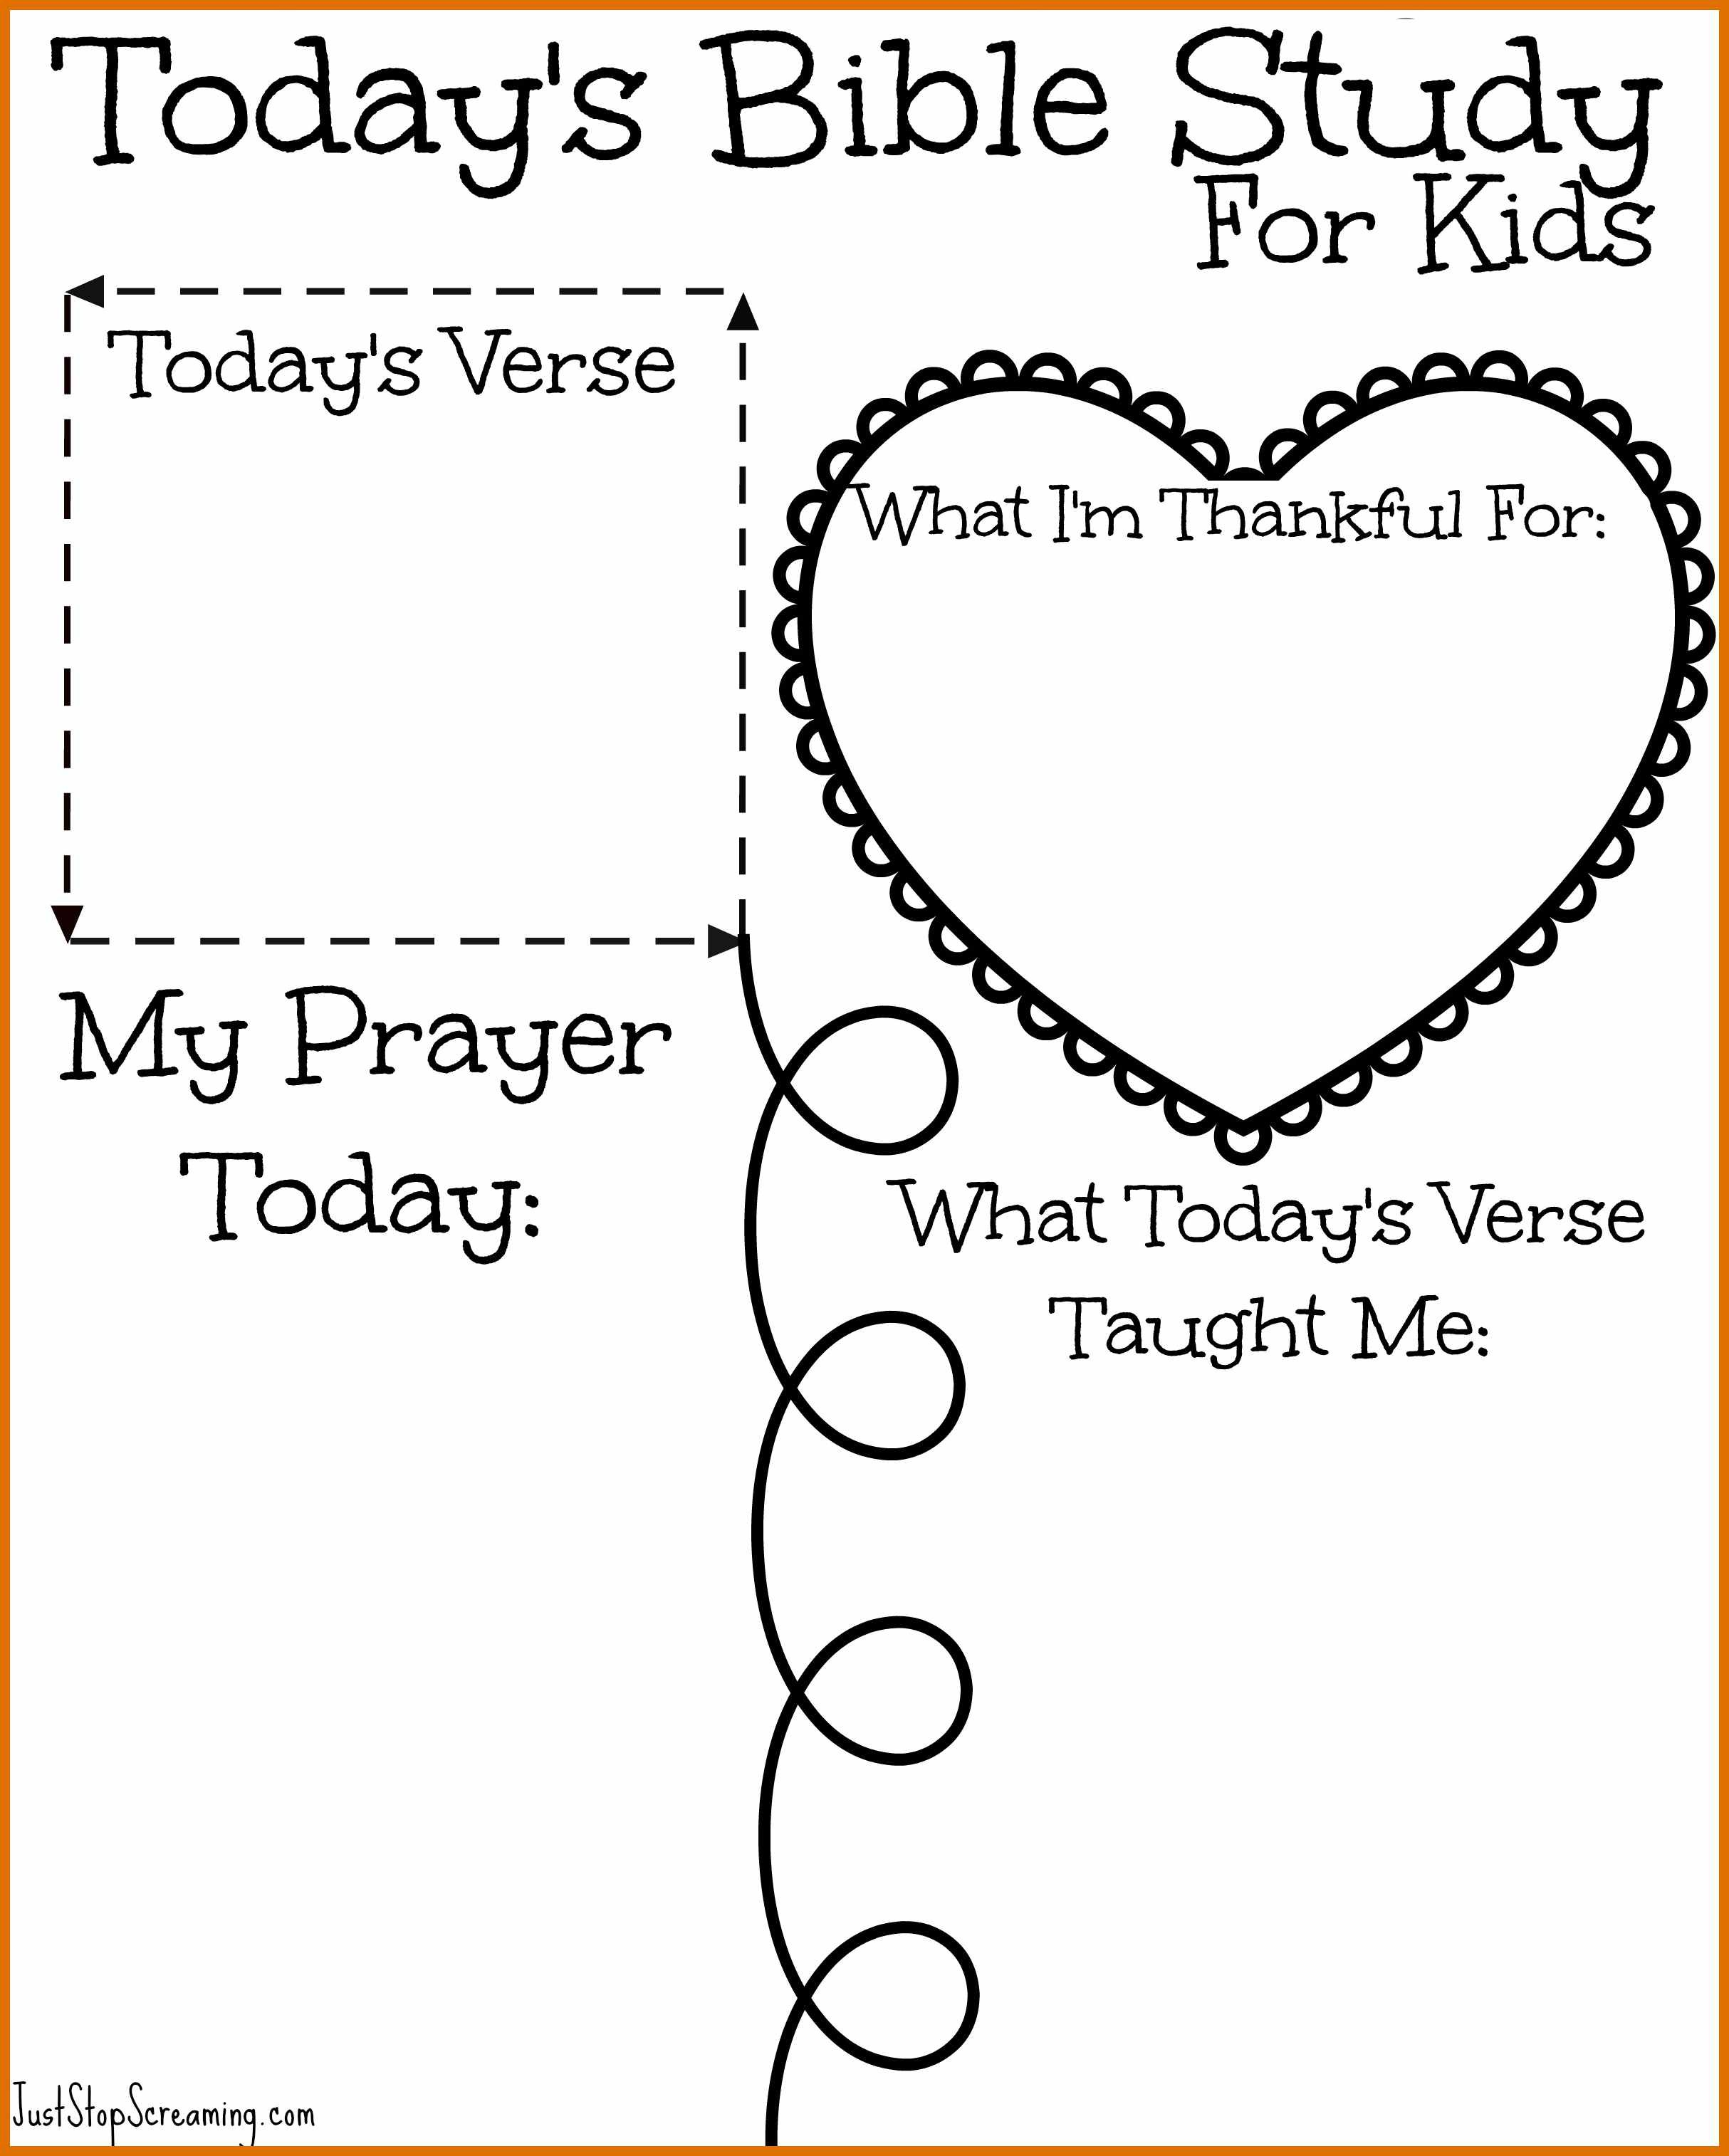 8-9 Free Printable Bible Study Worksheets | Sowtemplate - Free Printable Children's Bible Lessons